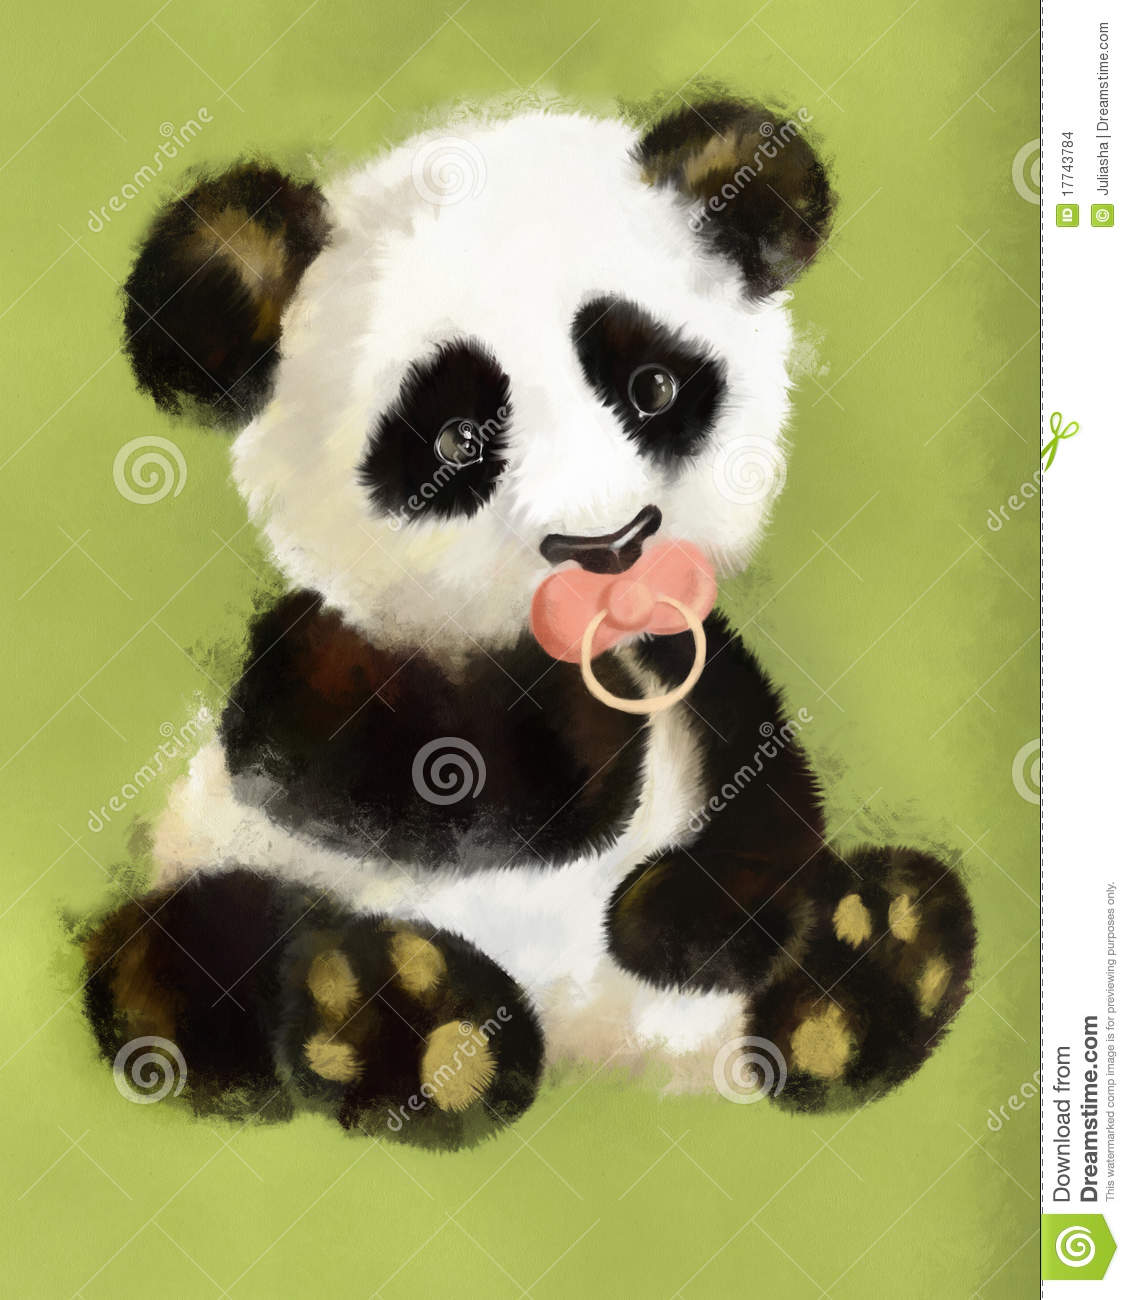 Small Cute Baby Wallpaper Download Baby Panda Stock Images Image 17743784